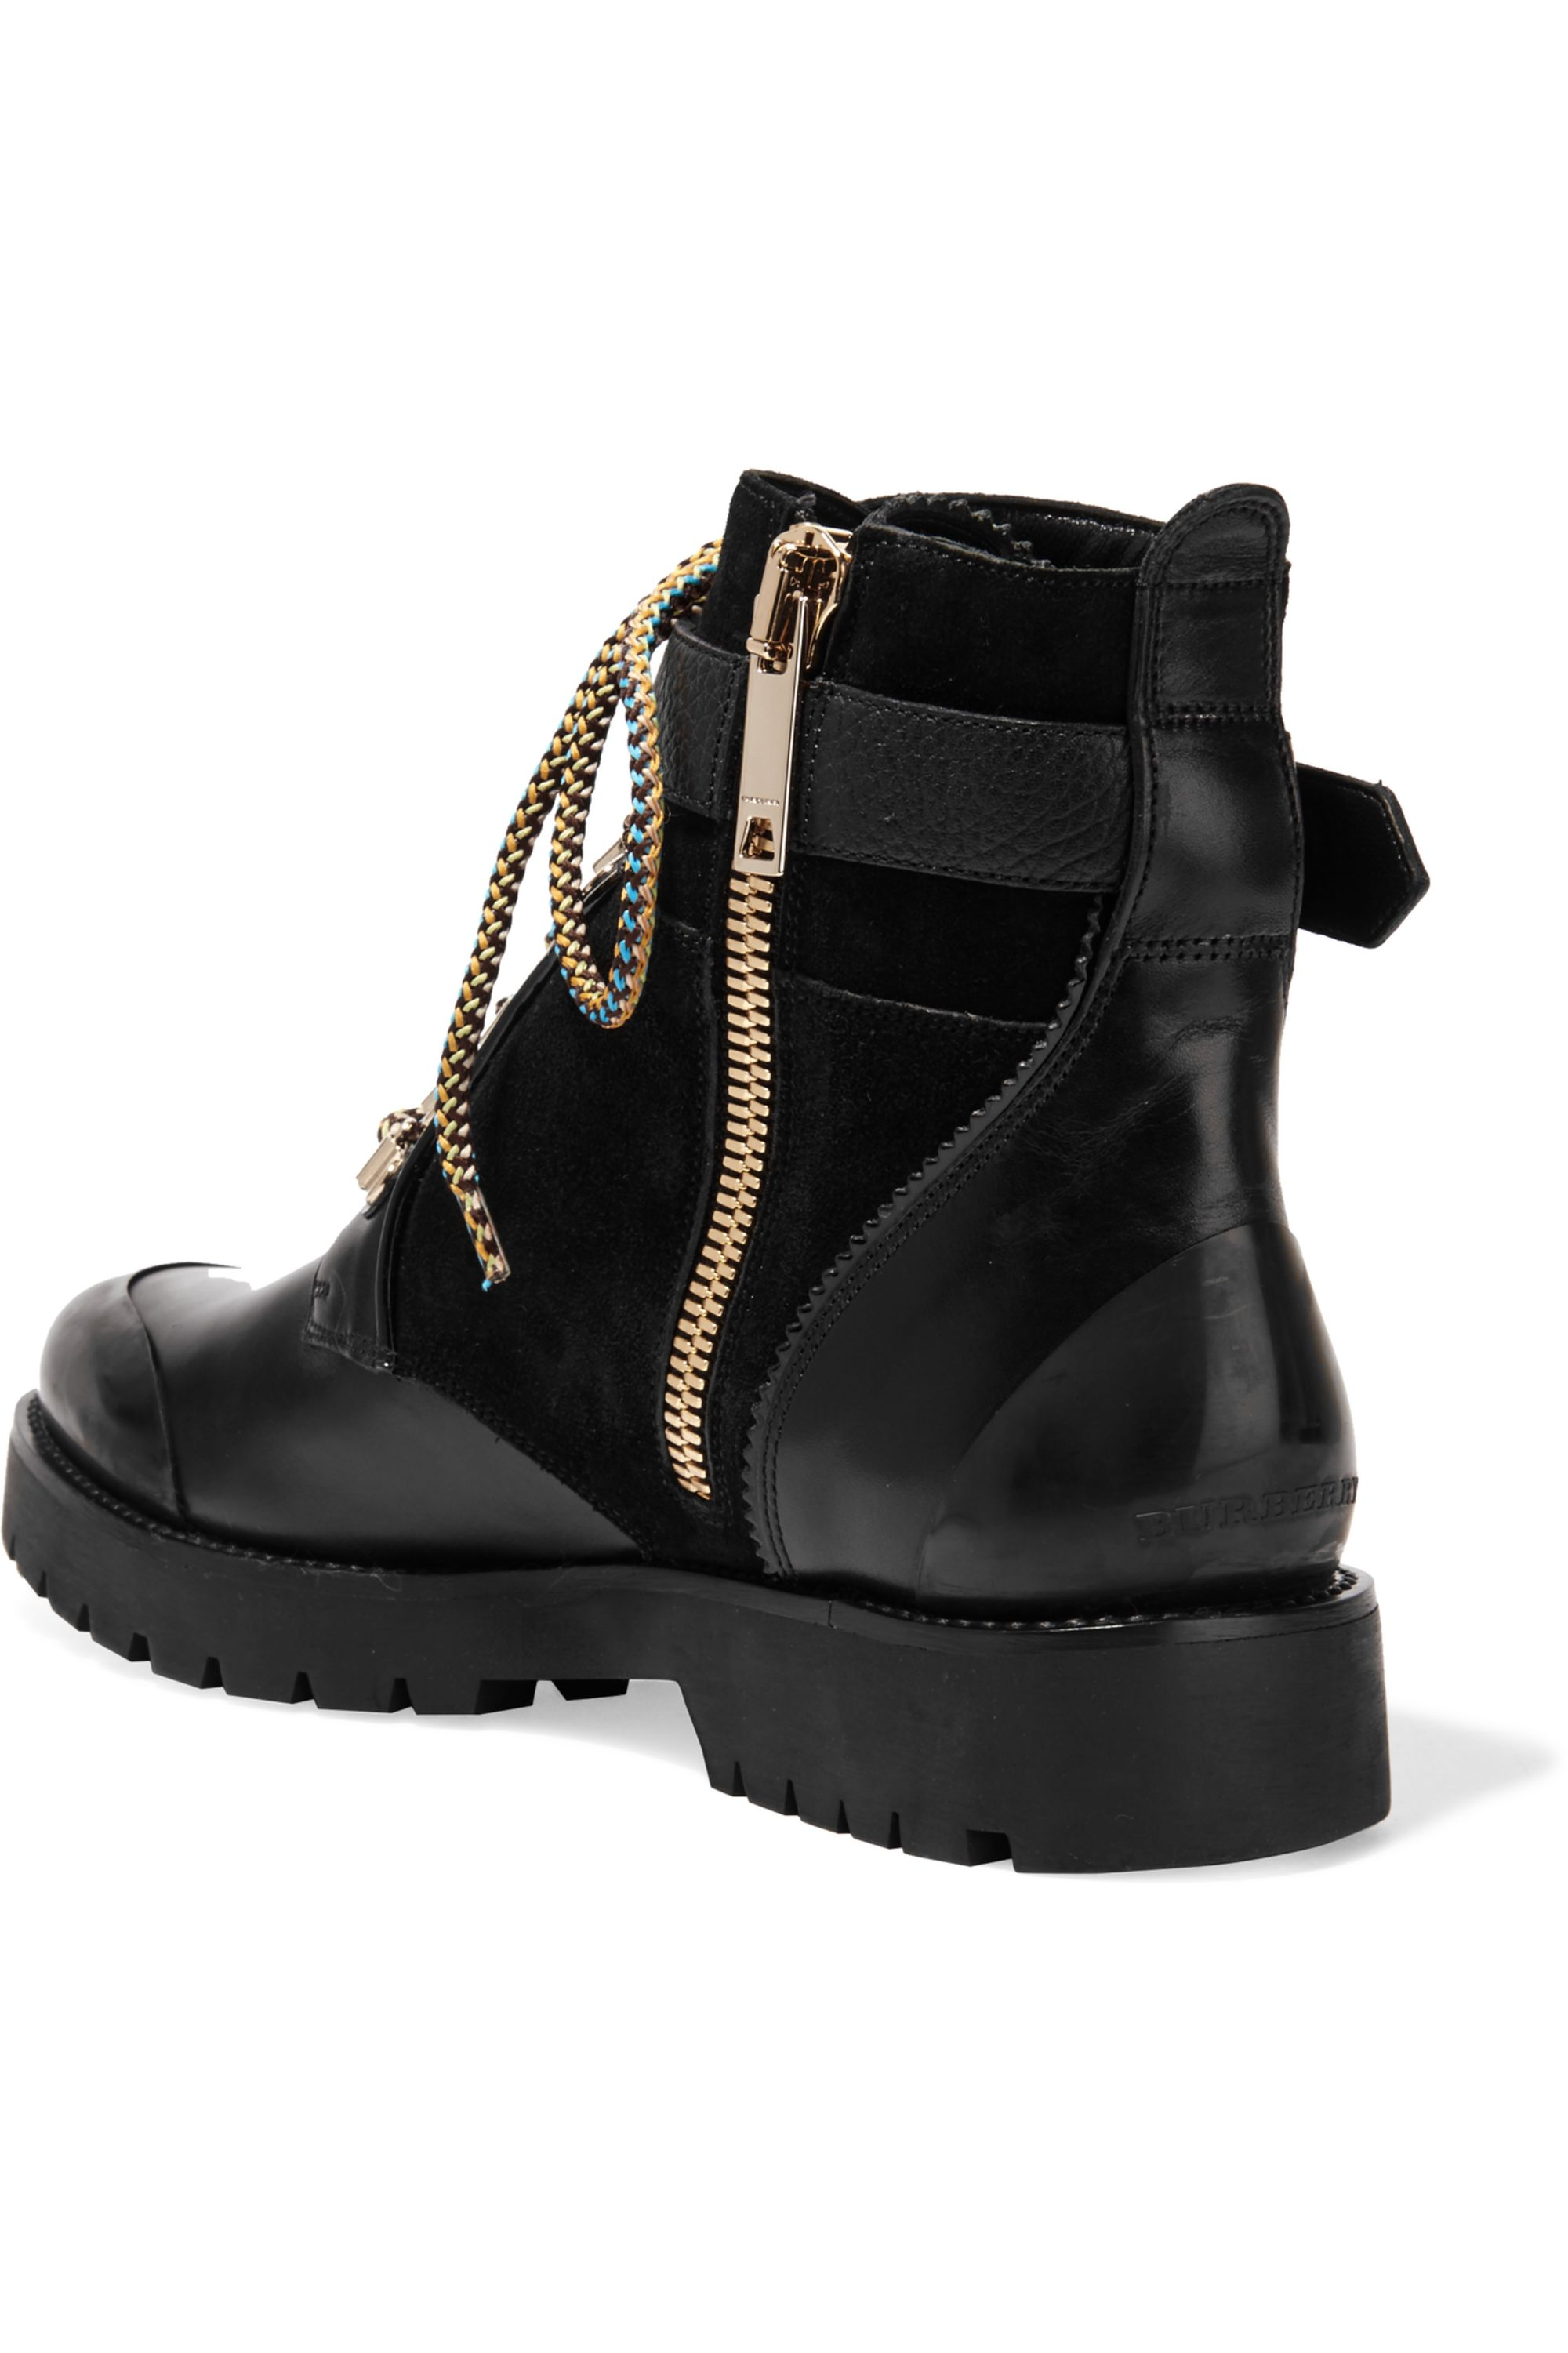 Burberry Leather and suede ankle boots